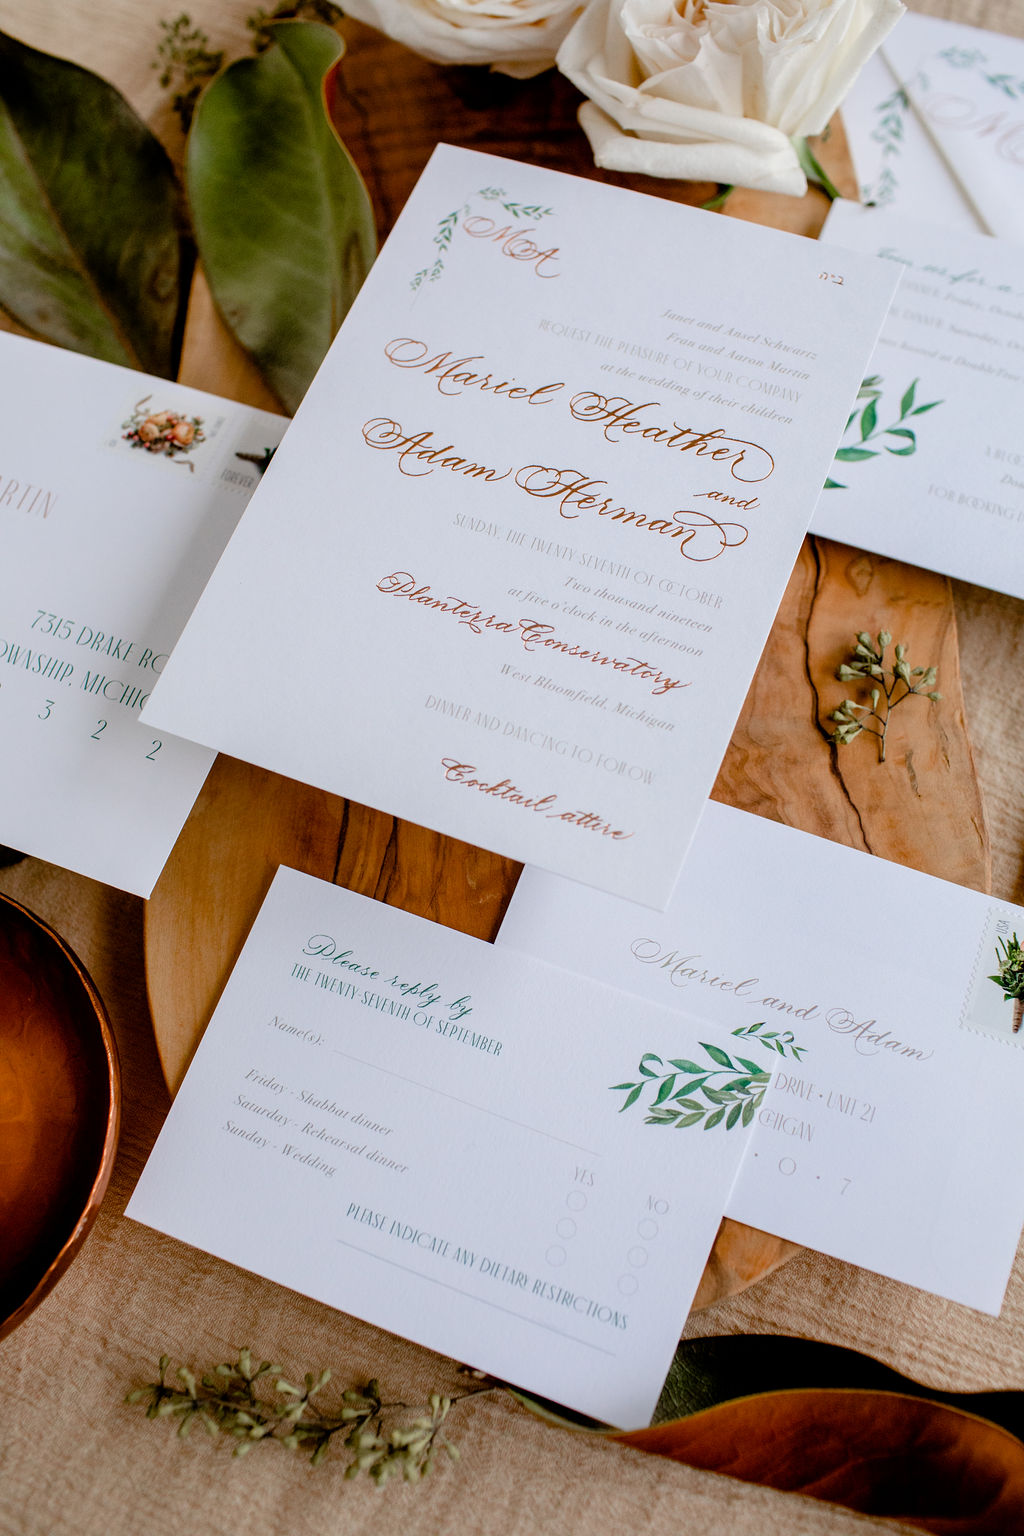 USPS Stamps with greenery invitation - rose gold foil stamping - traditional calligraphy - art deco style - 3 types of wedding invitations postage - Leah E. Moss Designs